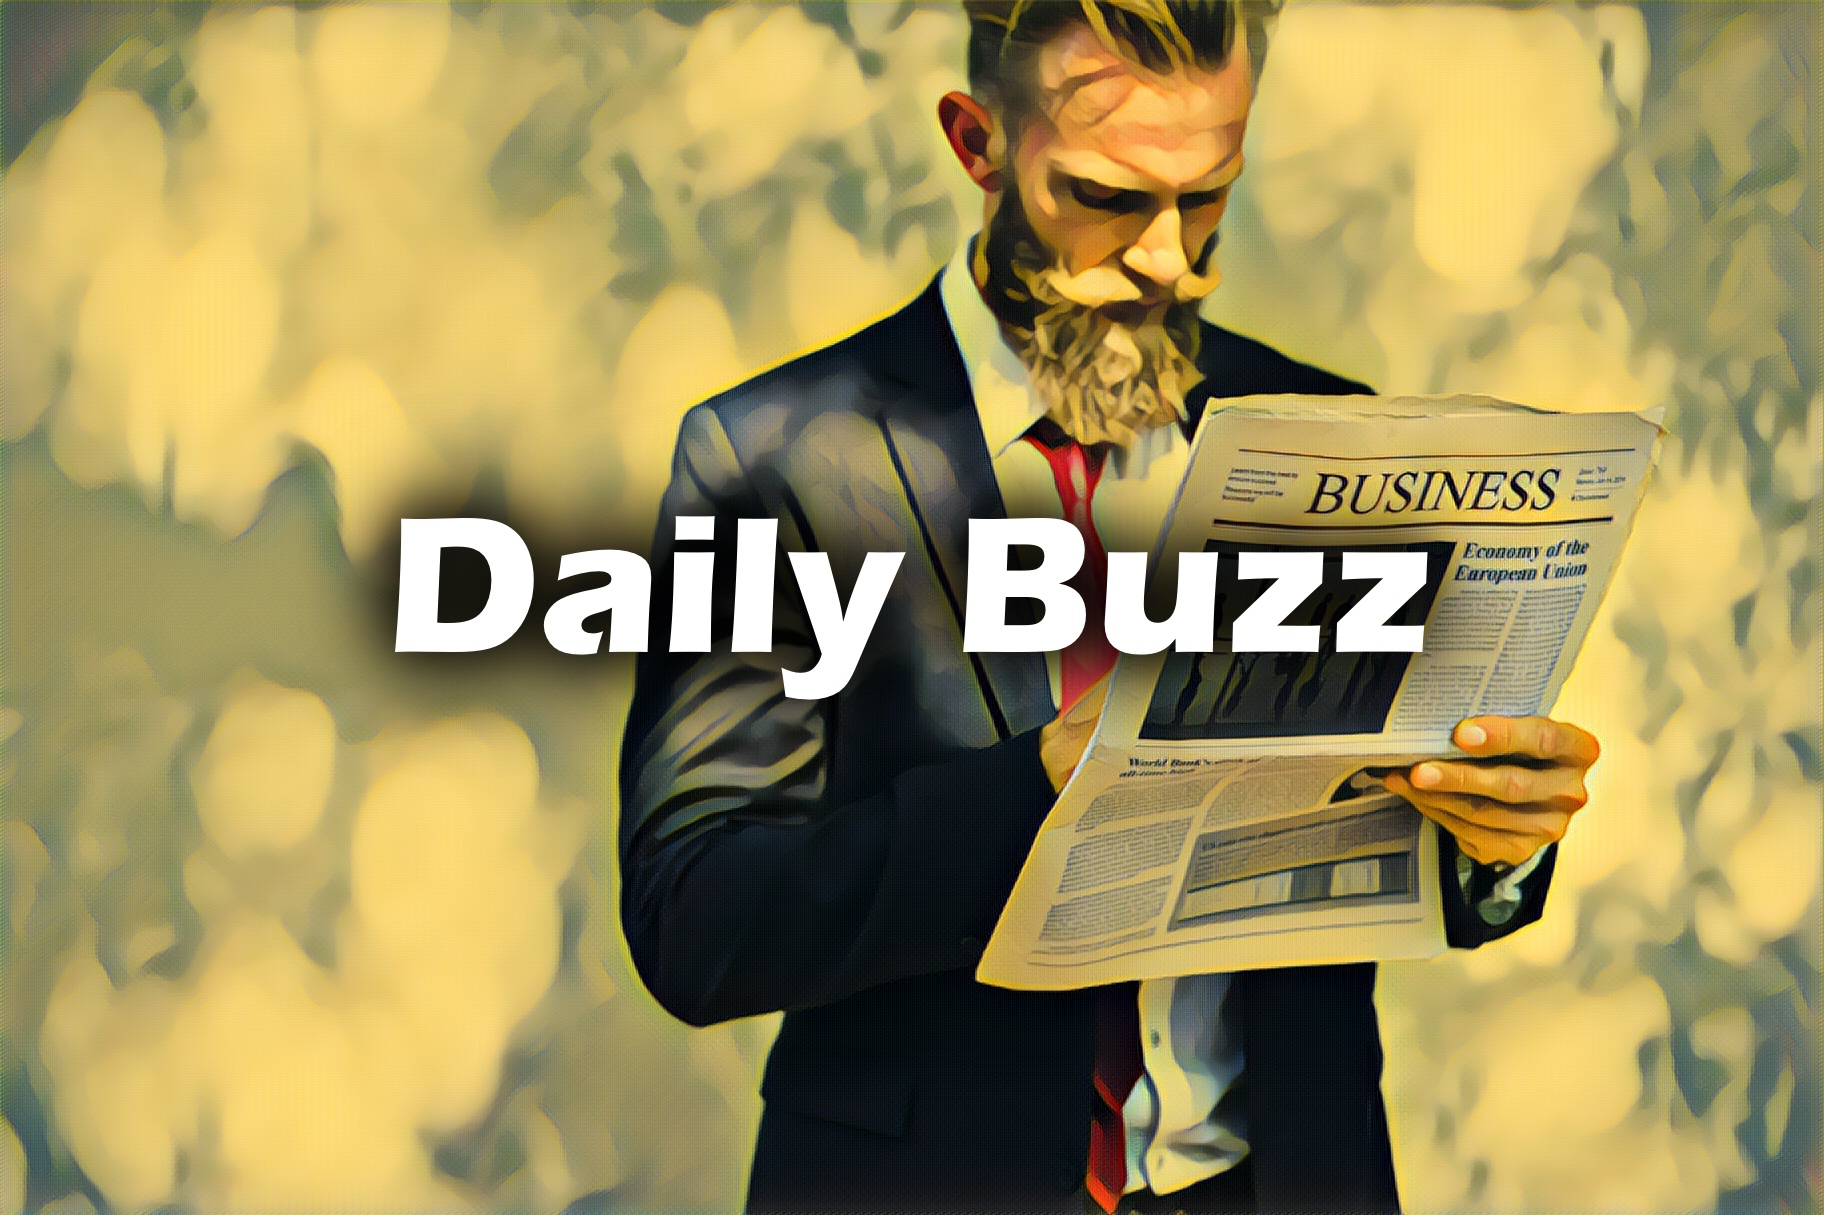 DailyBuzz Wednesday 6 June 2018